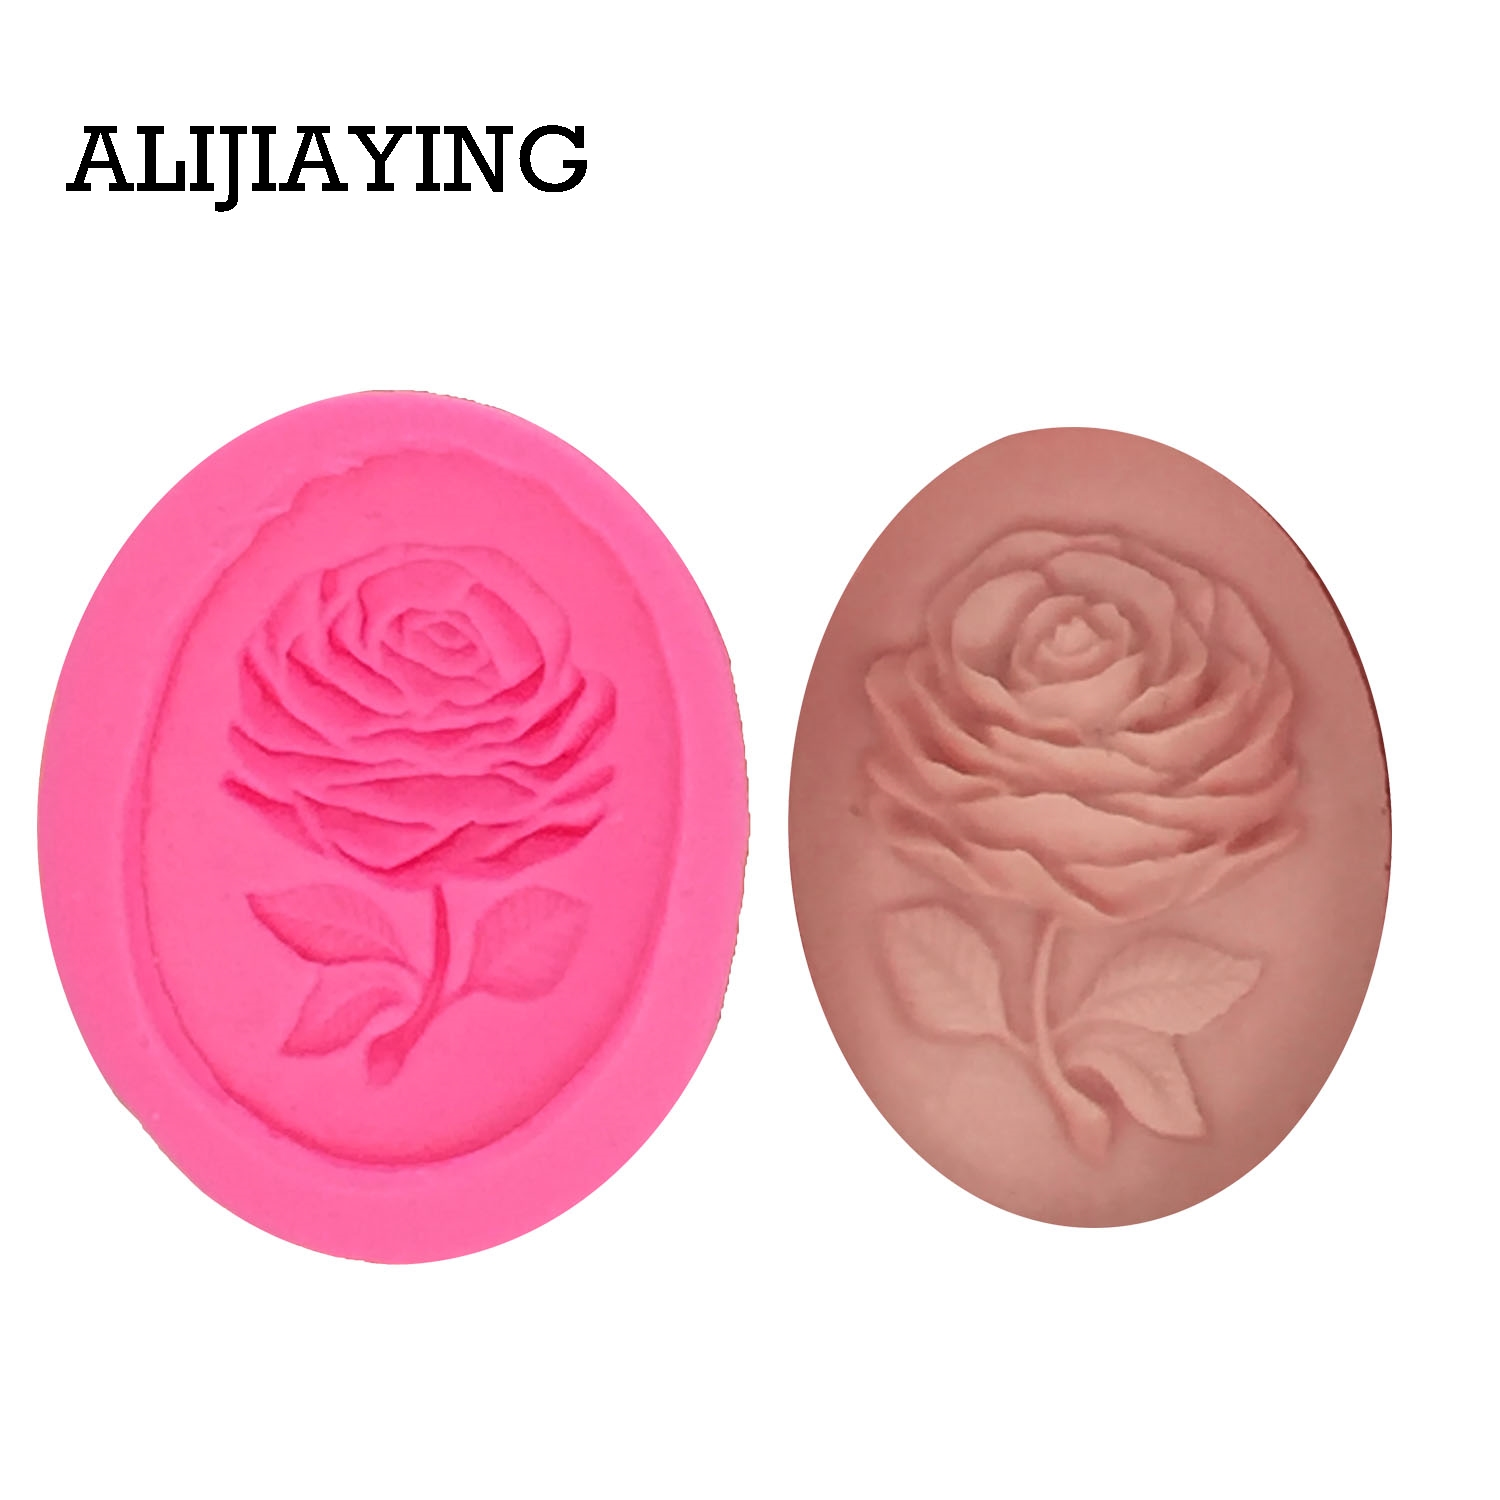 4 Pack Fondant Decorating Tools Set Simuer 3pcs Number and Letter Shape Silicone Mold Cake Decoration 3D Soap Chocolate Moulds